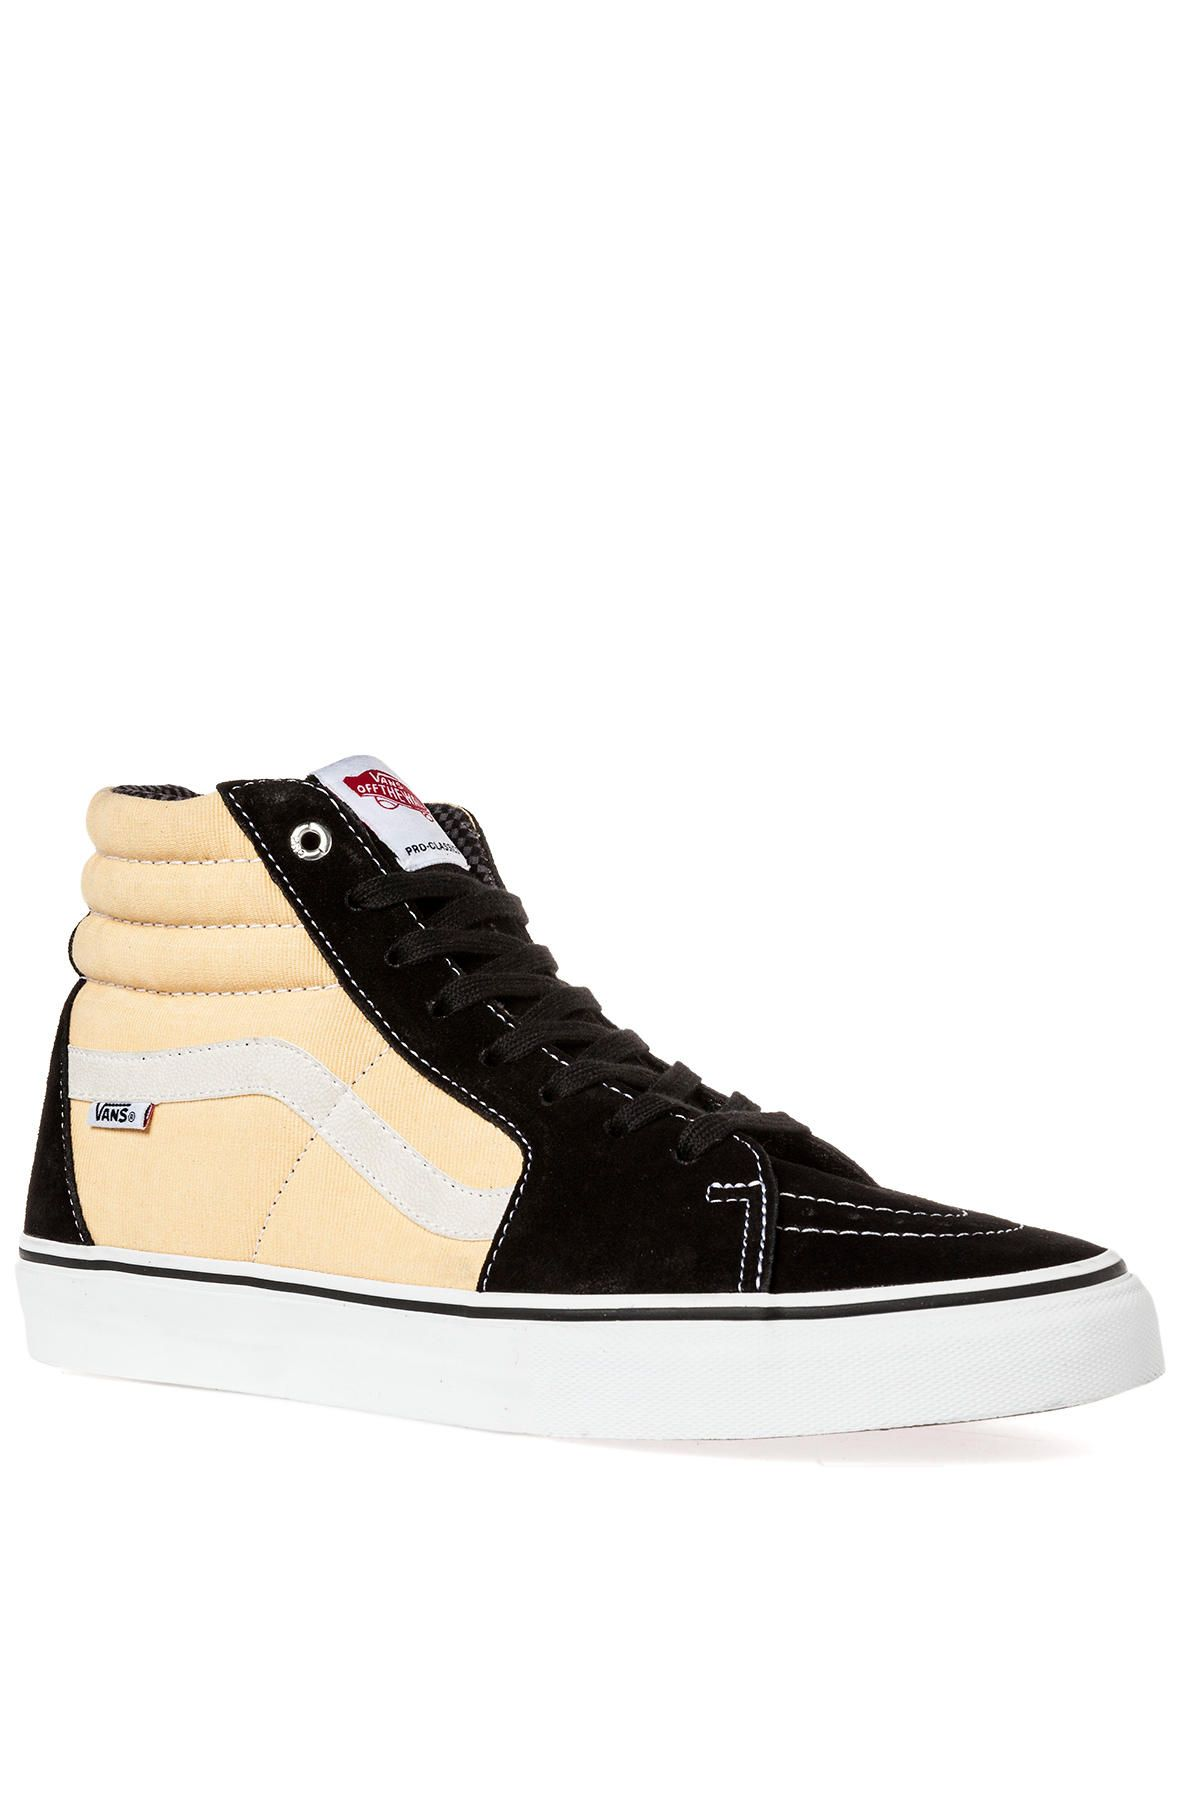 9043a051a525 The SK8 Hi Pro Sneaker in Black and Checkers - By Vans - http   www ...